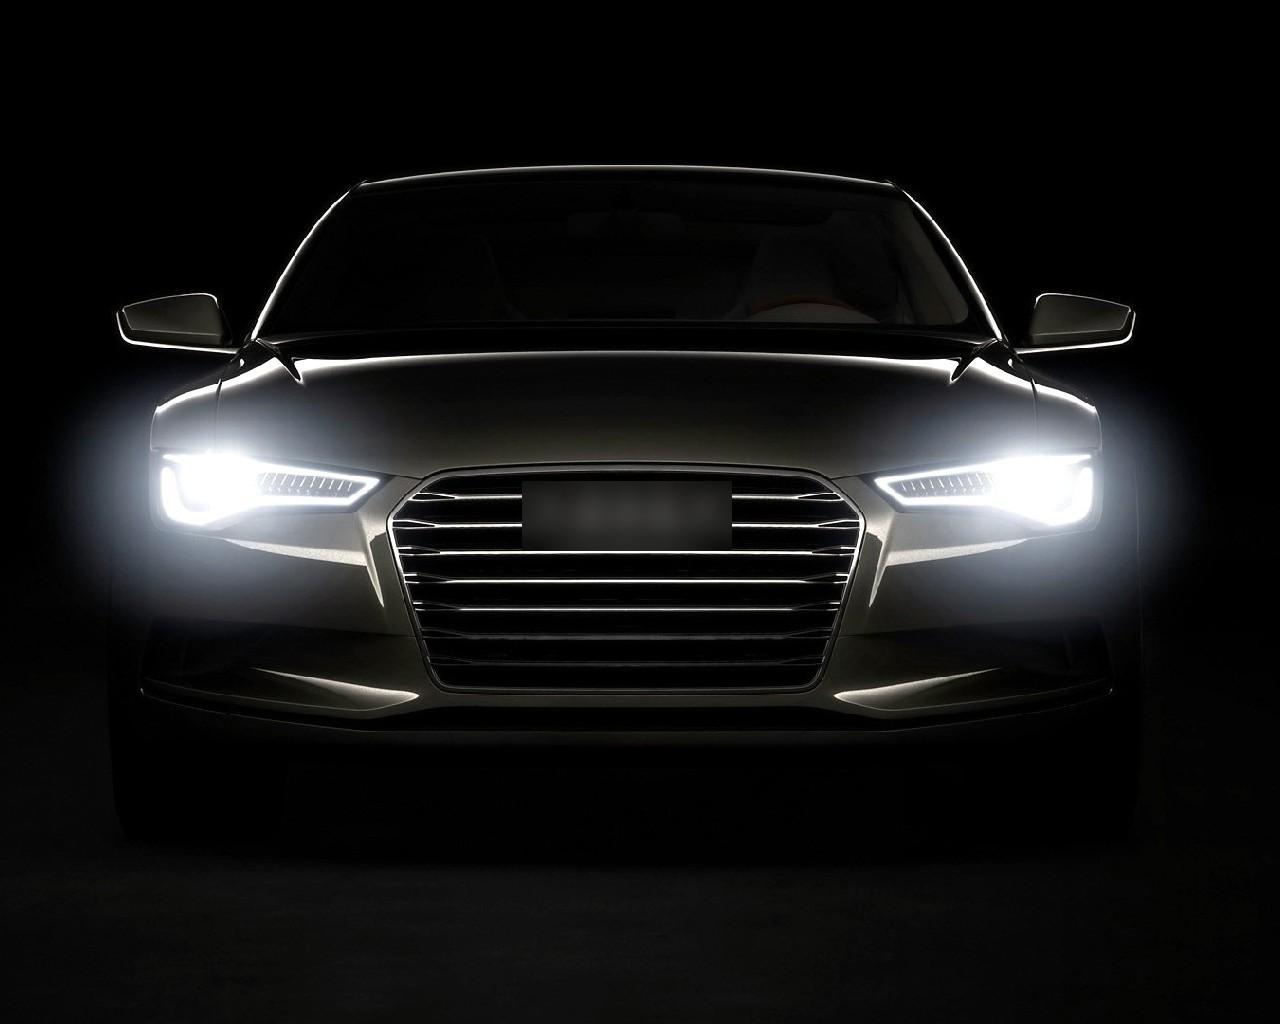 New Wallpaper Audi A4 2017 For Android Apk Download